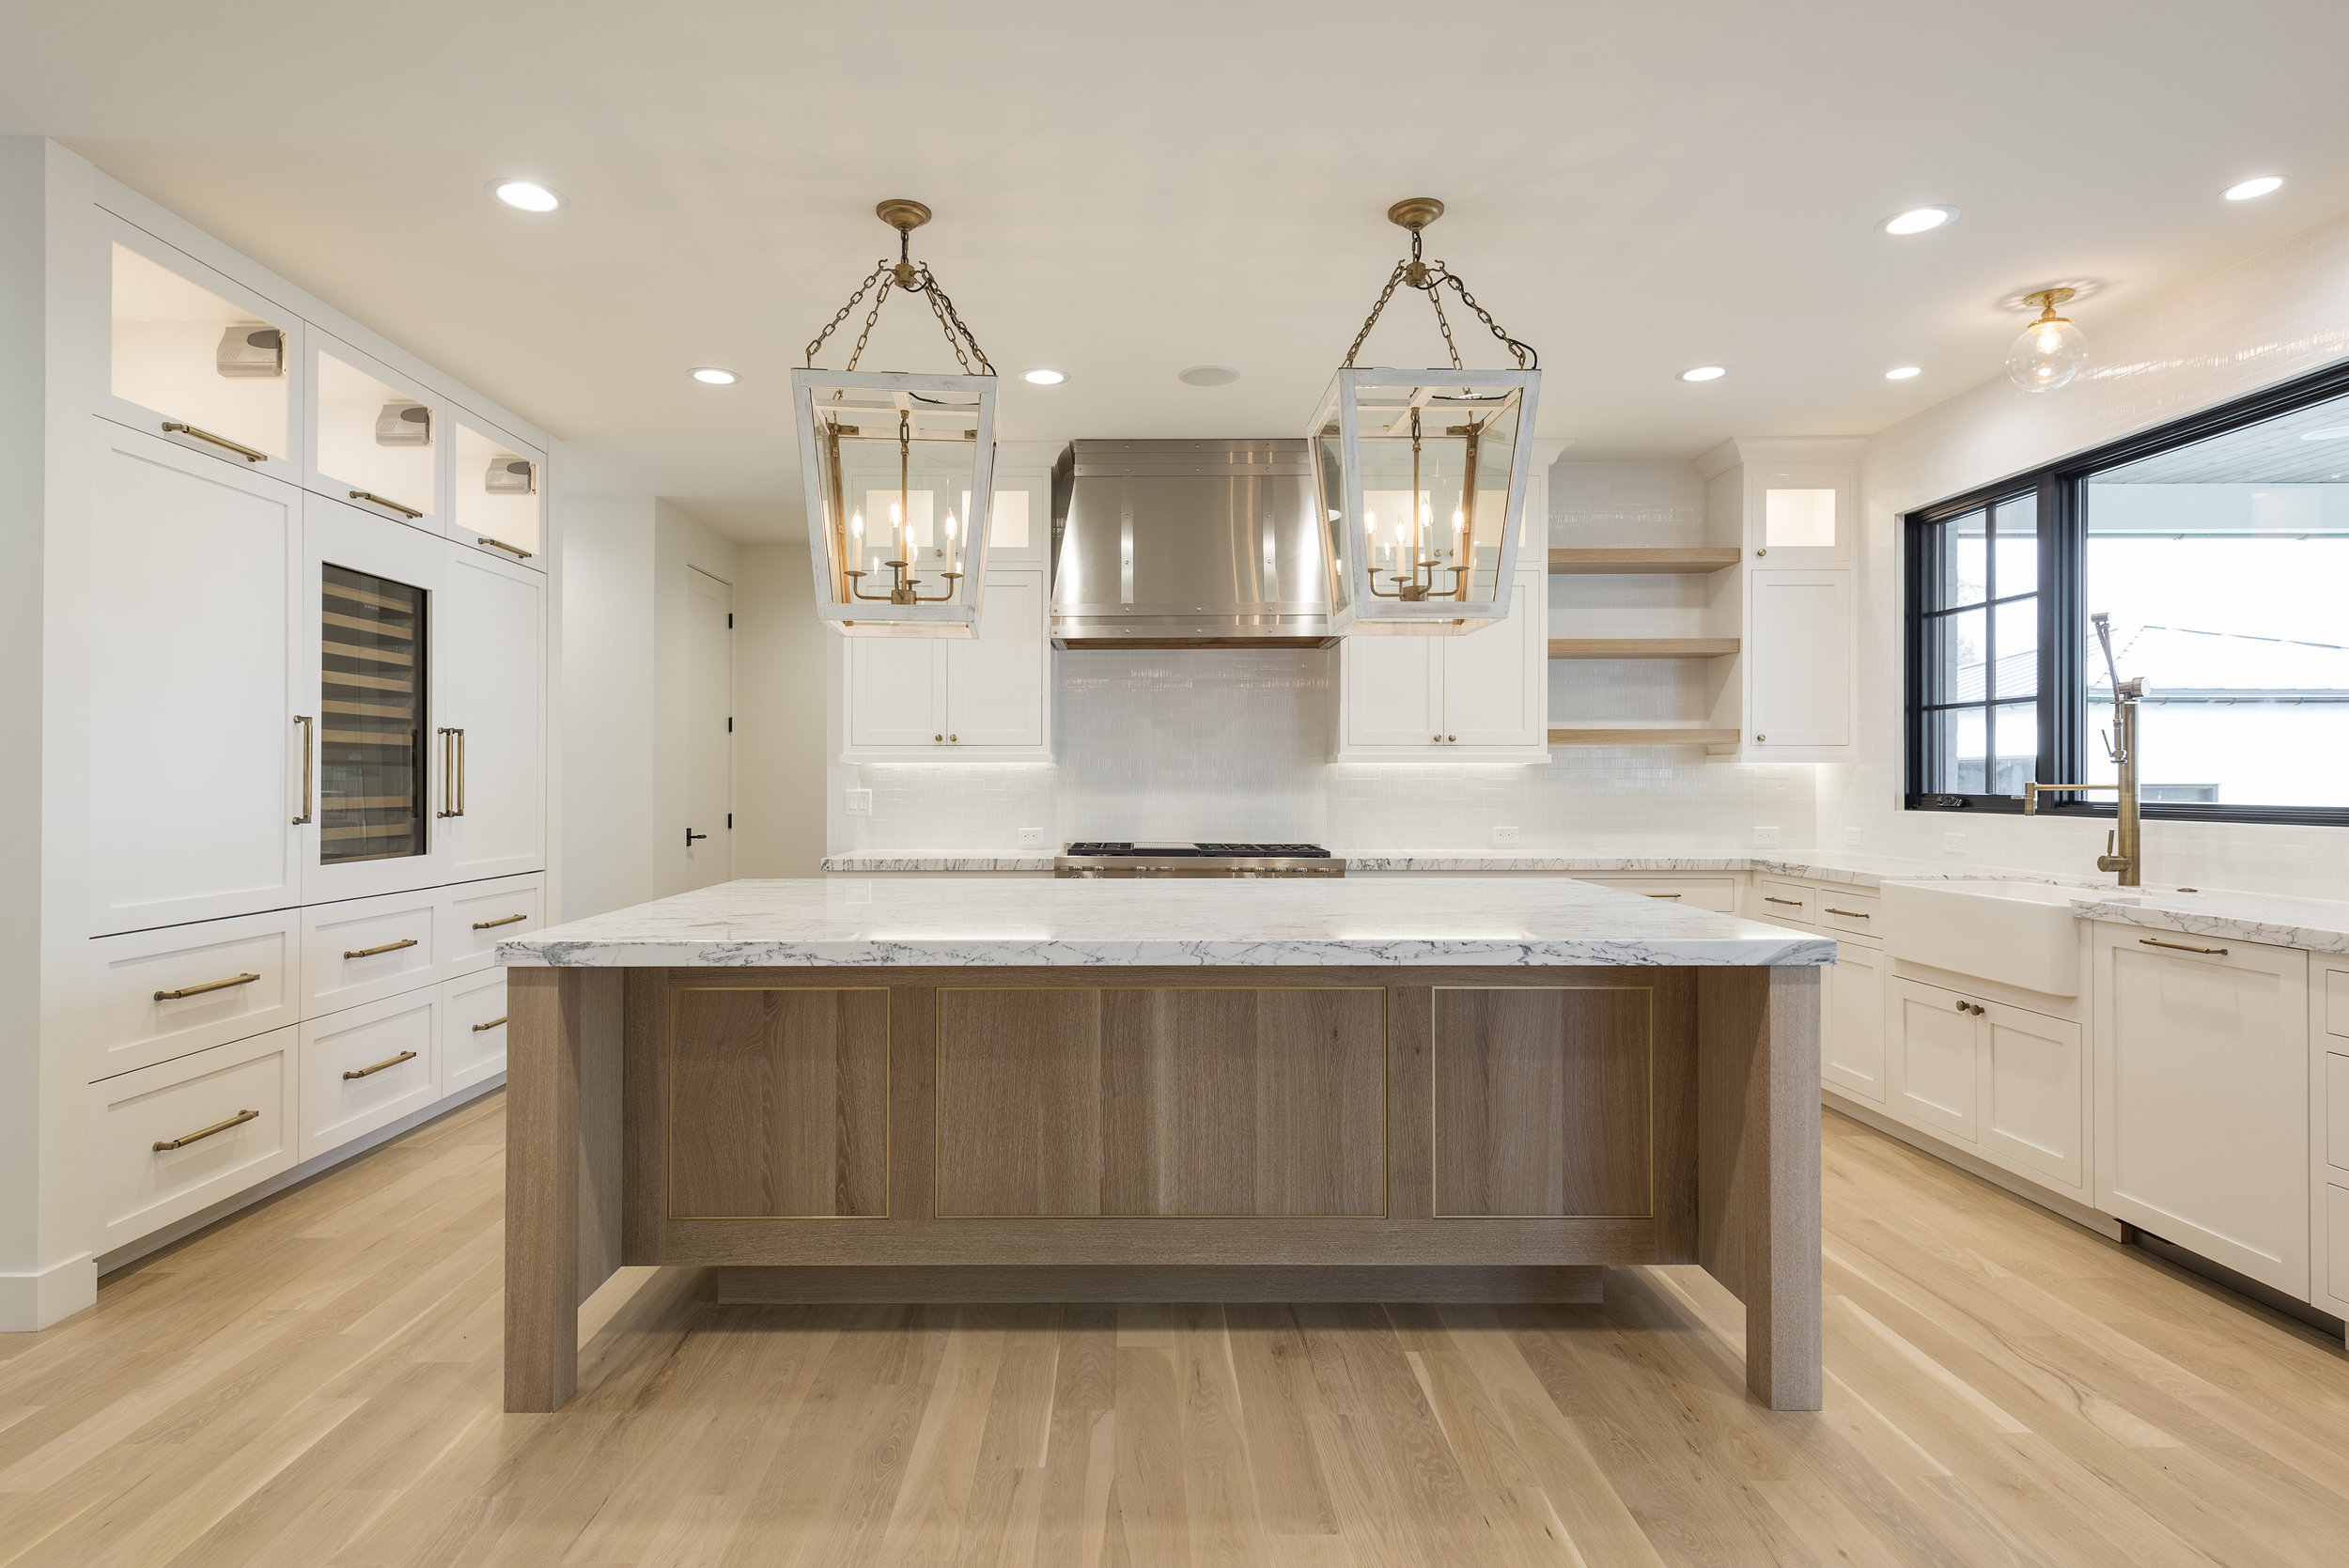 designing a home to sell - See the spec home we designed in tandem with Caitlin Creer Interiors and Northstar Builders…